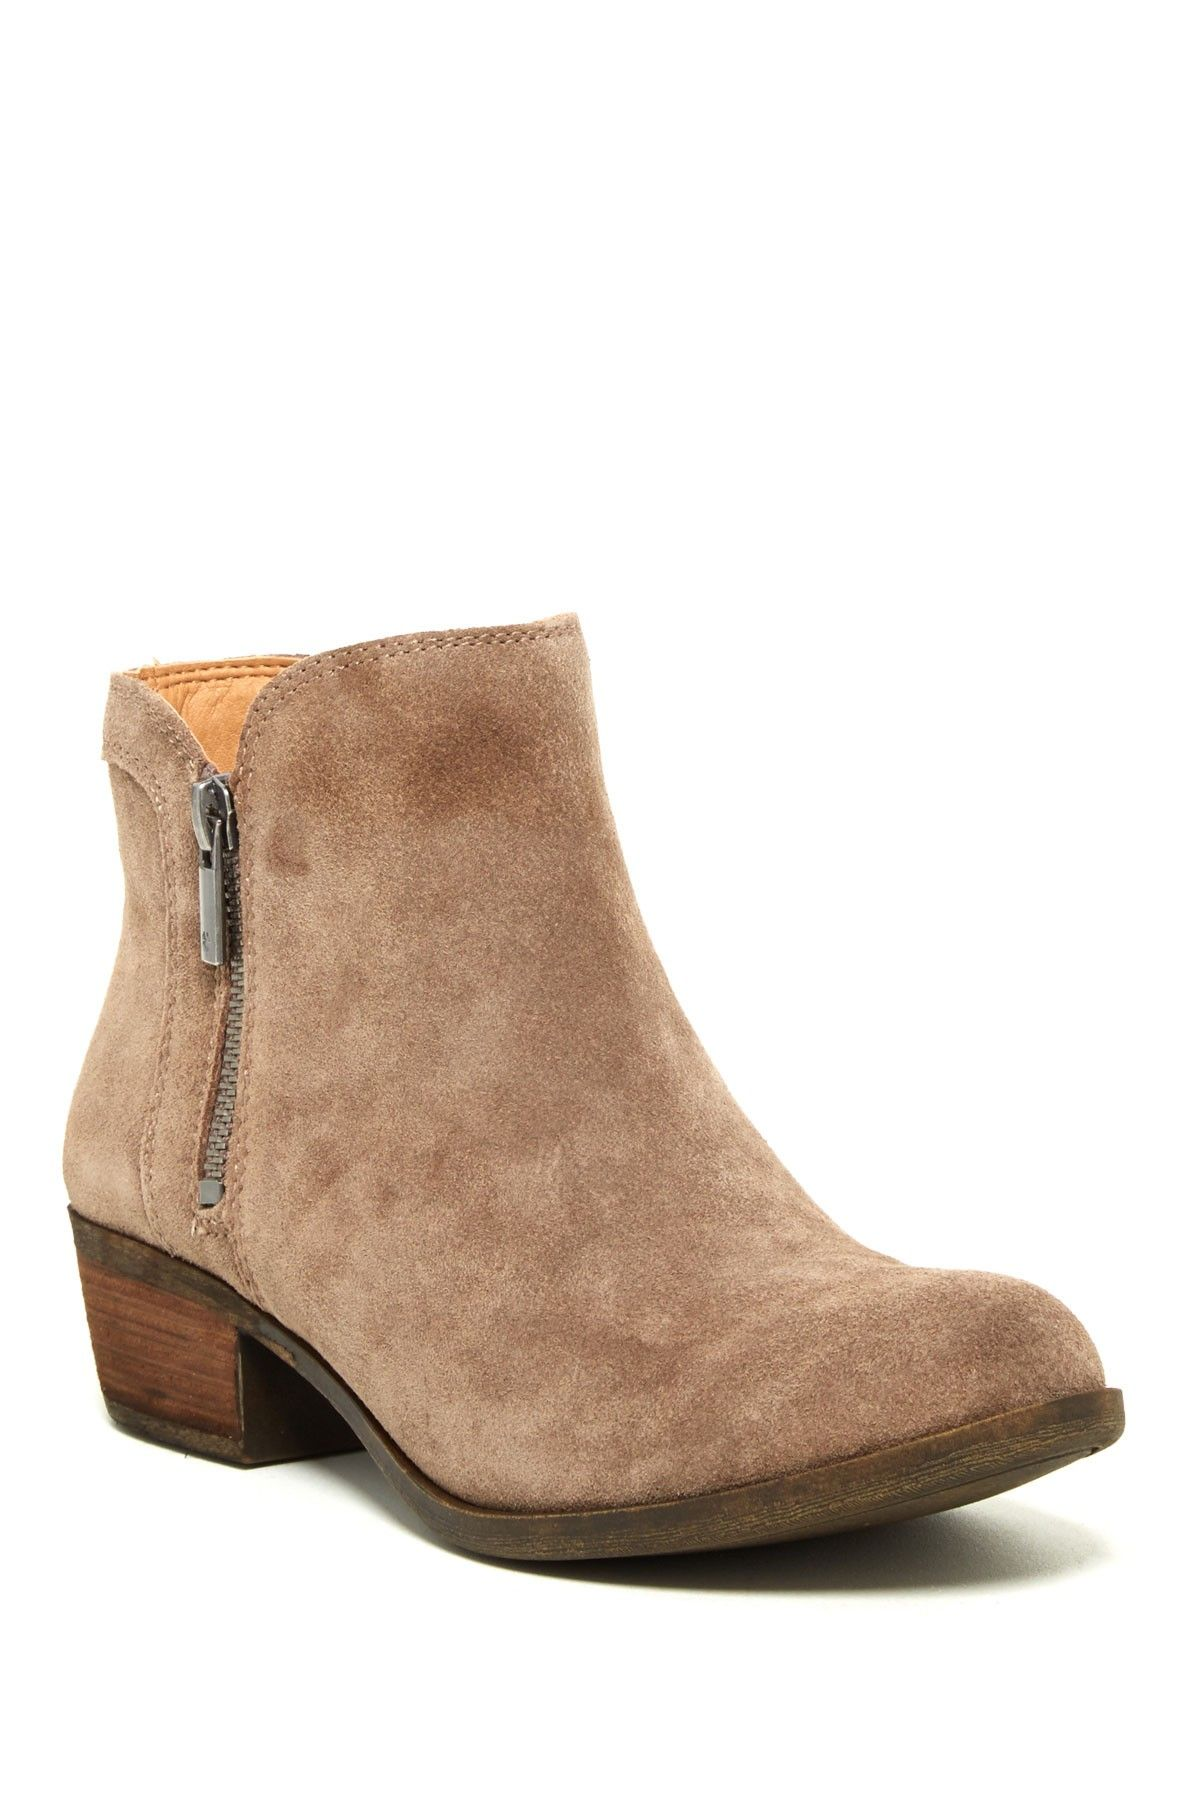 c2557bb05 Lucky Brand - Breah Bootie at Nordstrom Rack. Free Shipping on orders over  $100.